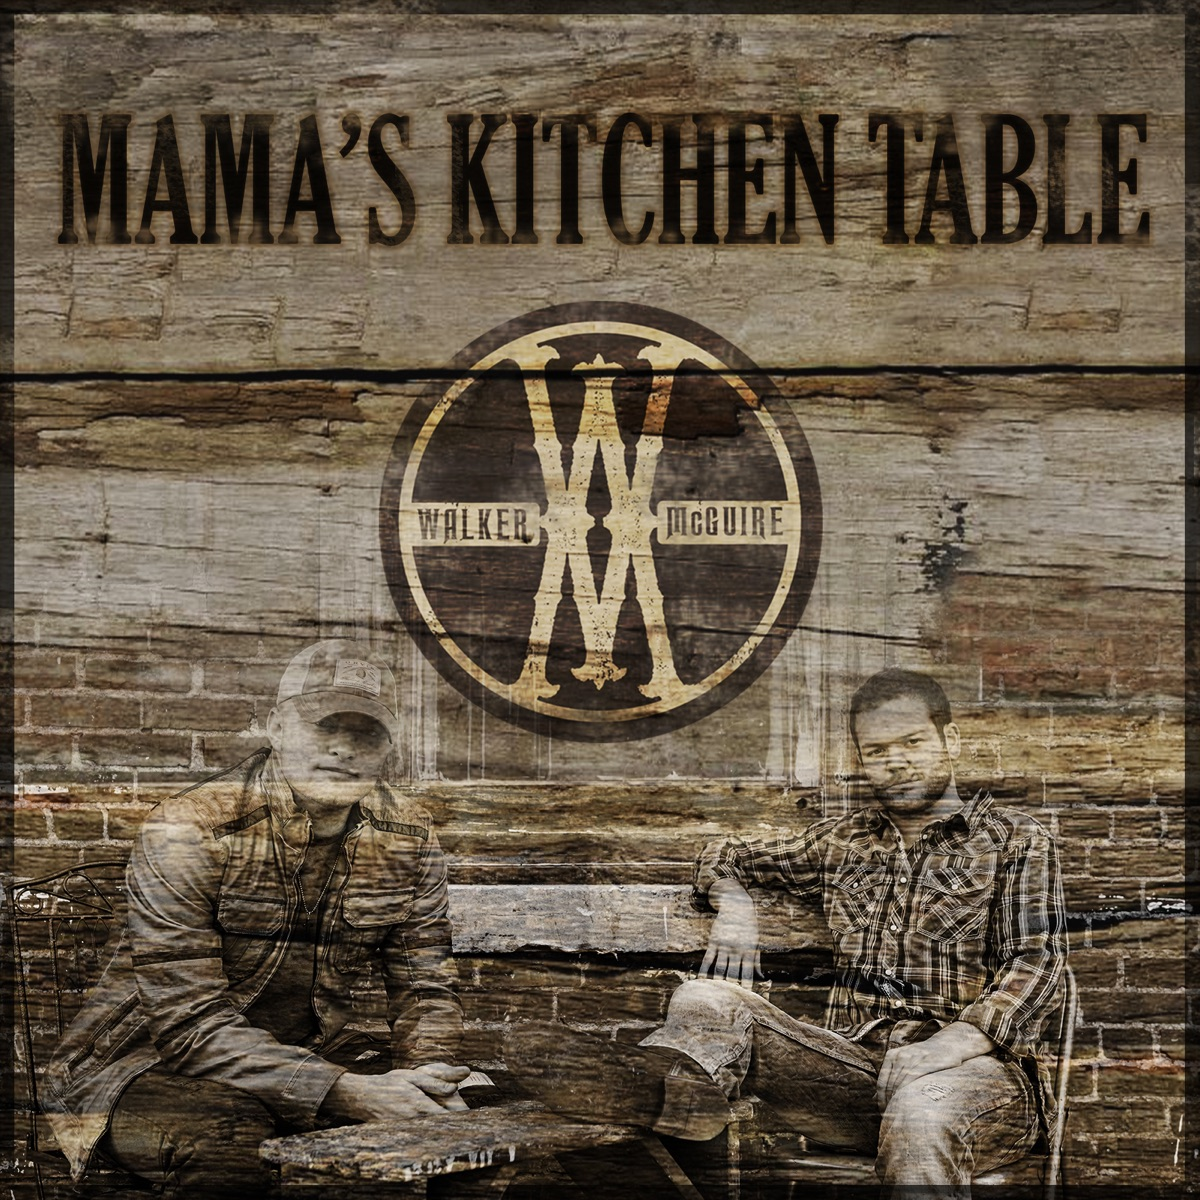 Mamas Kitchen Table - Single Walker McGuire CD cover